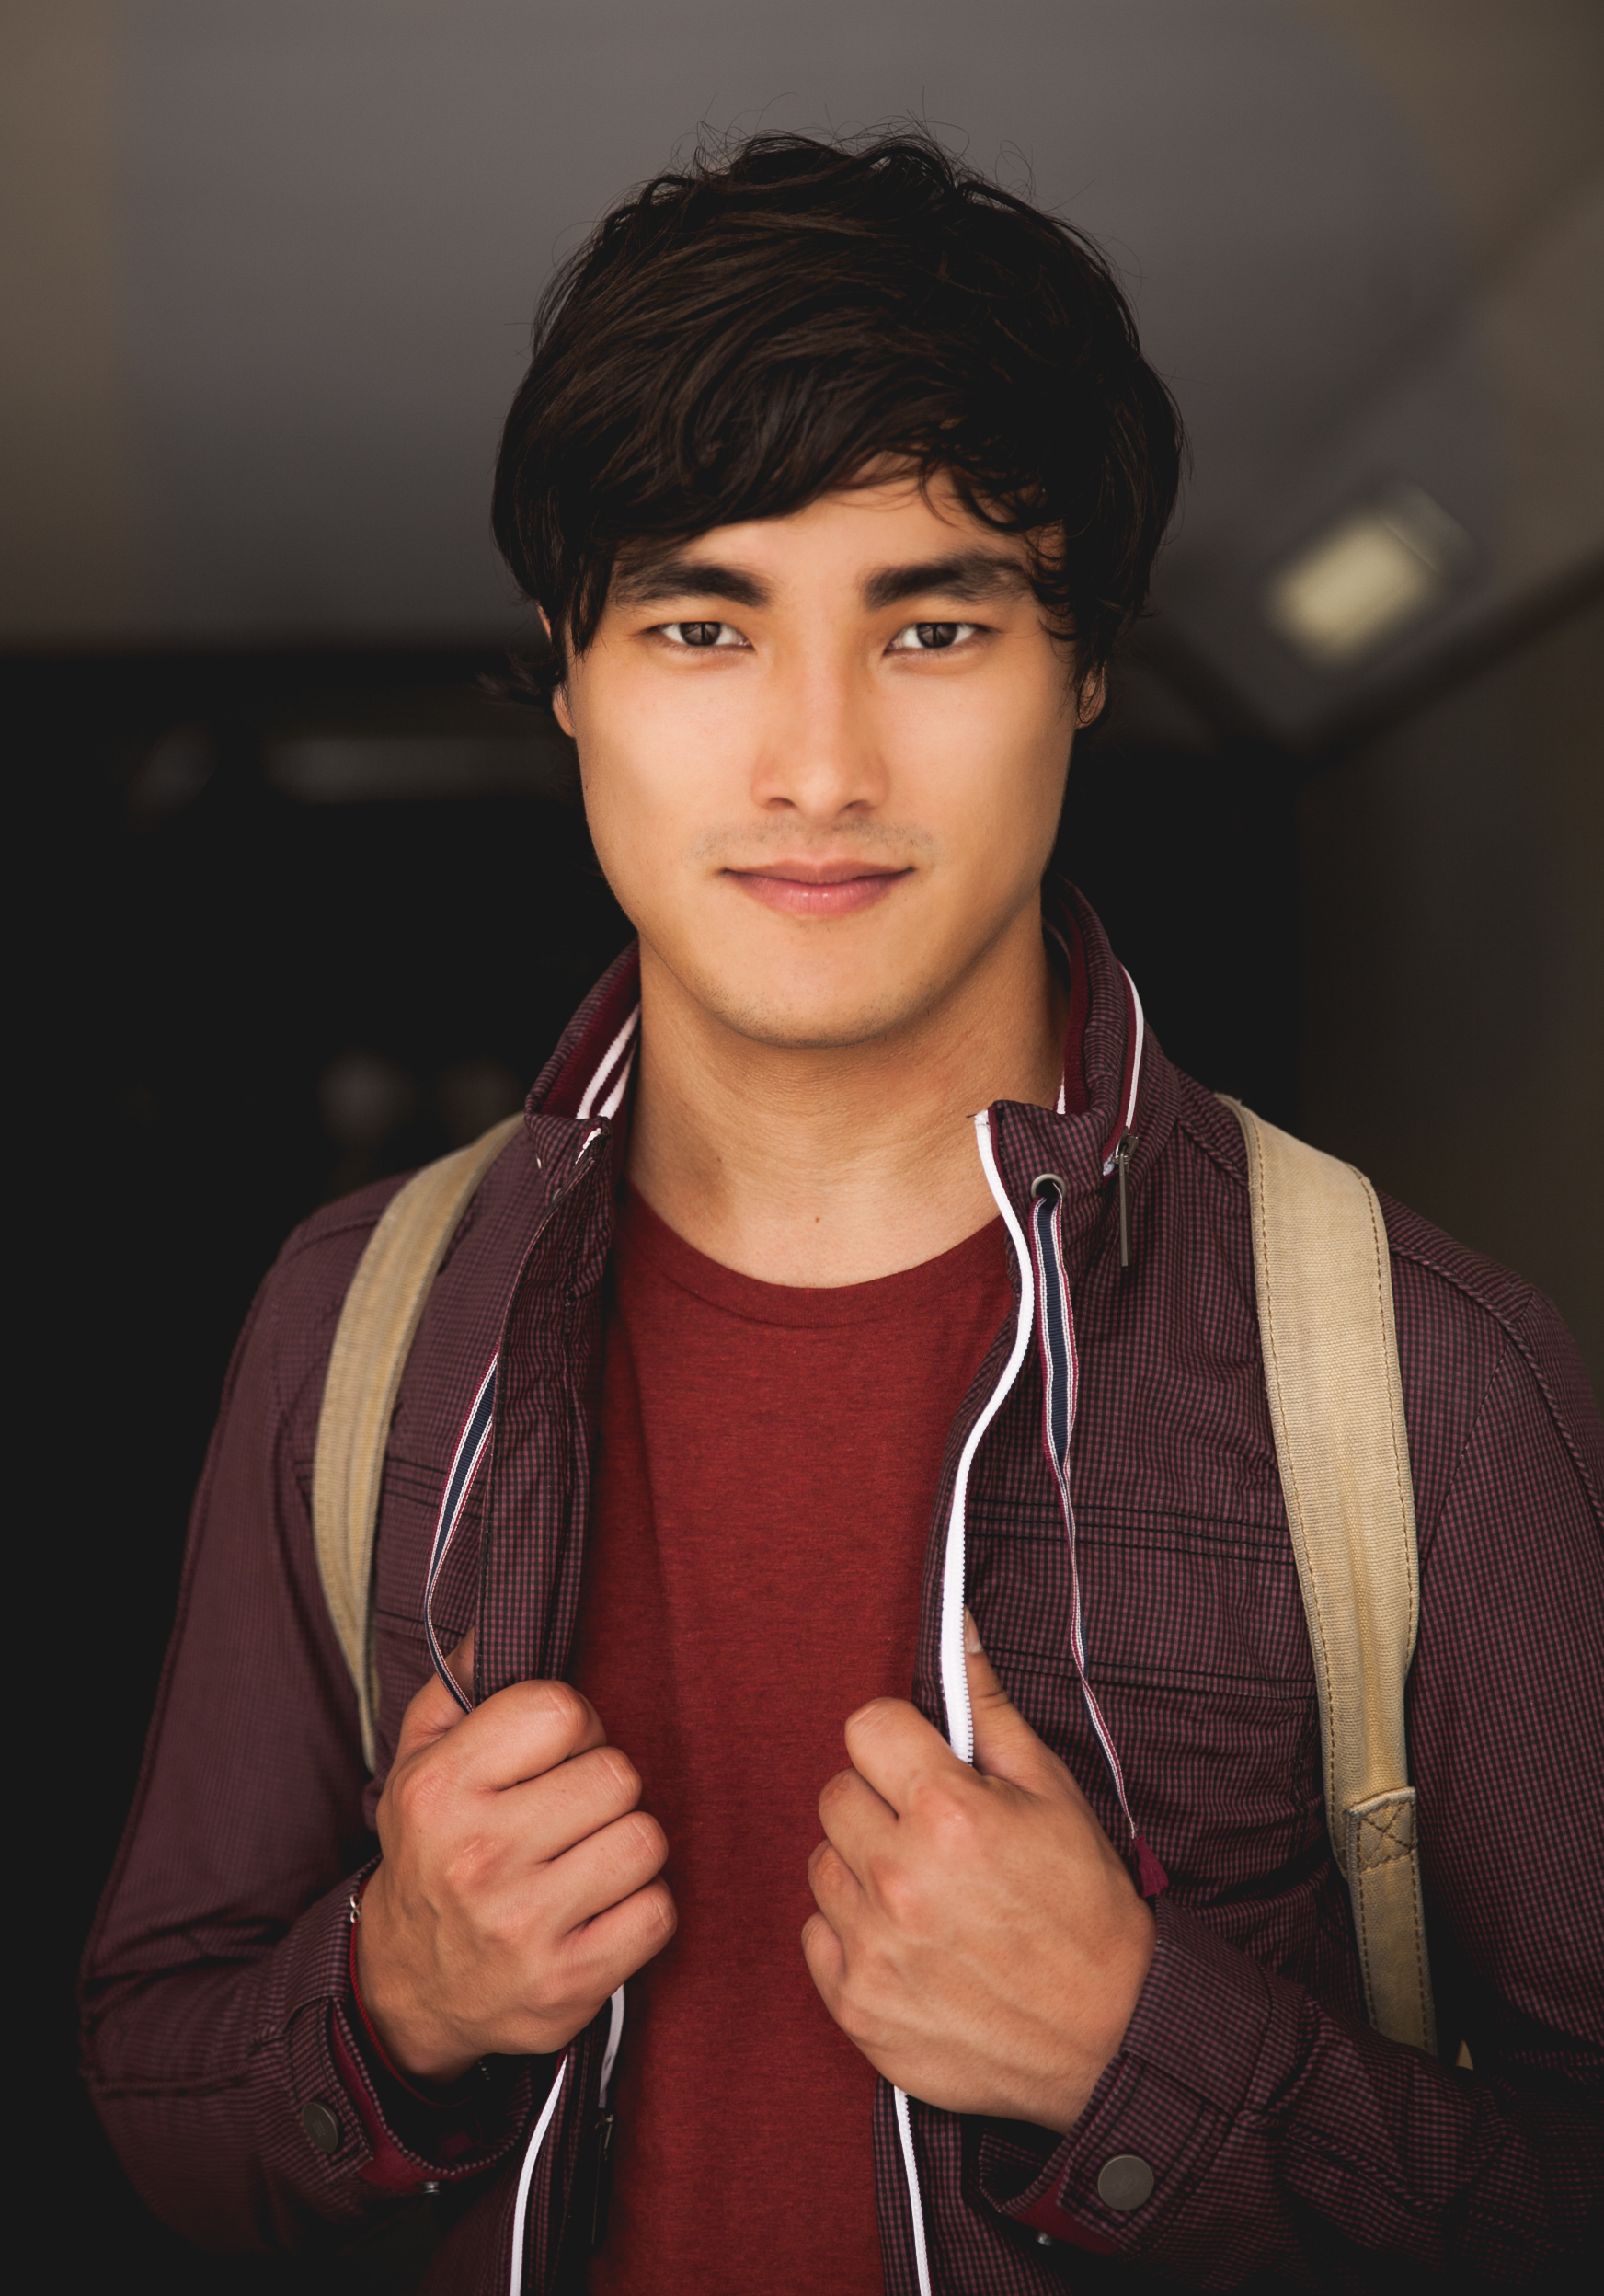 interview with remy hii marco polo better man neighbours. Black Bedroom Furniture Sets. Home Design Ideas